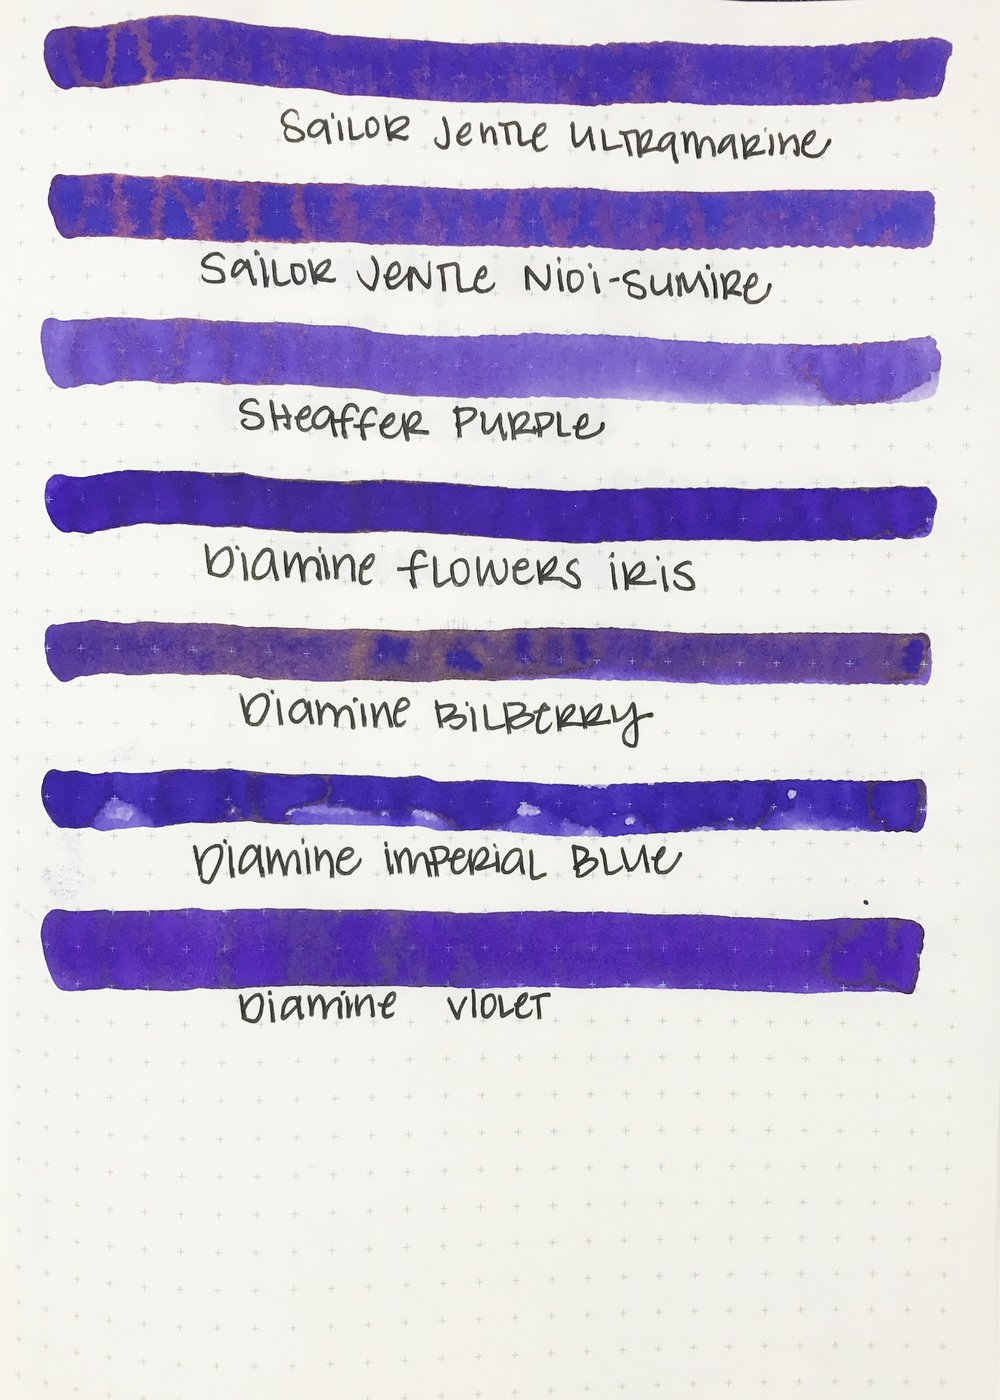 Similar inks... - The closest ink is Sailor Jentle Nioi-Sumire. The second closest is Diamine Imperial Blue, which has a lot less sheen. Seasonally, I would use this ink during the winter.